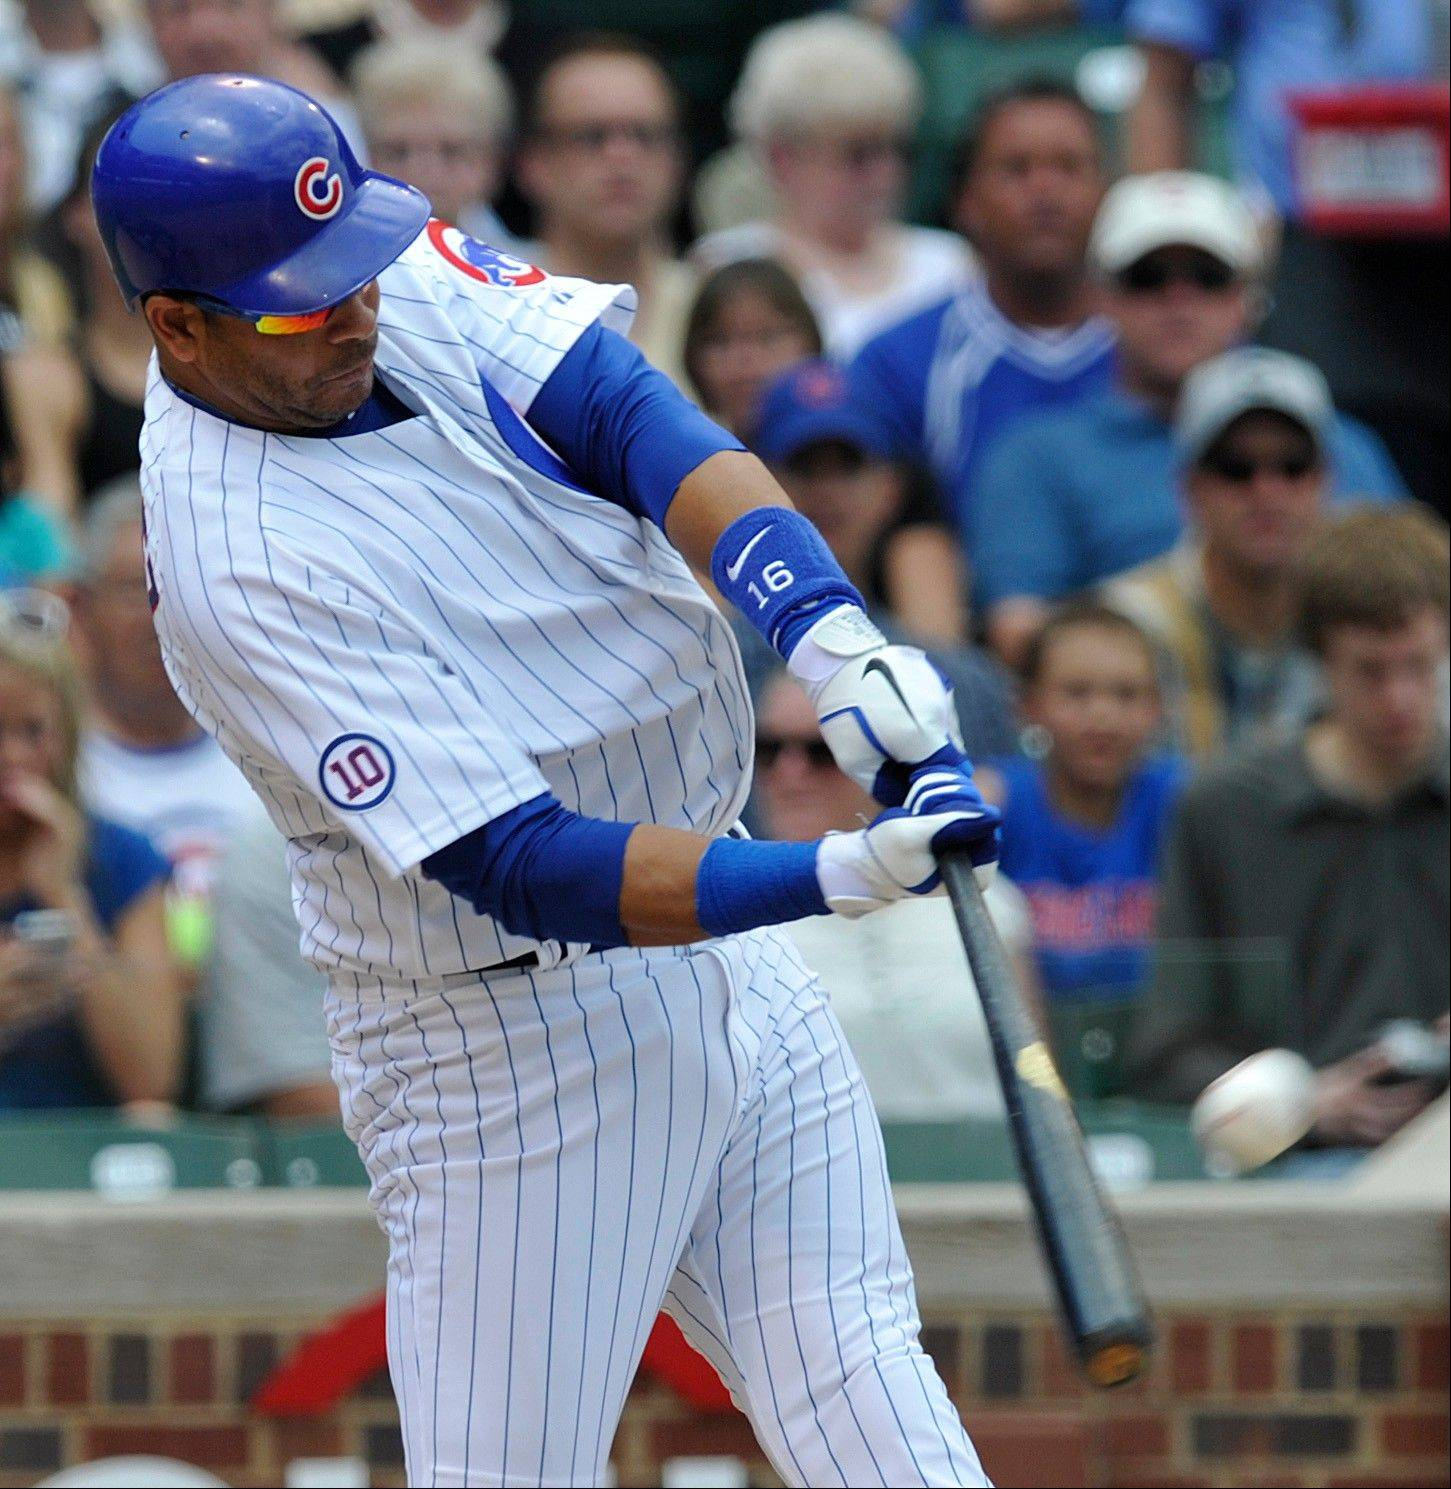 The Cubs' Aramis Ramirez hits a two-run home run against the Colorado Rockies during Monday's first inning at Wrigley Field.